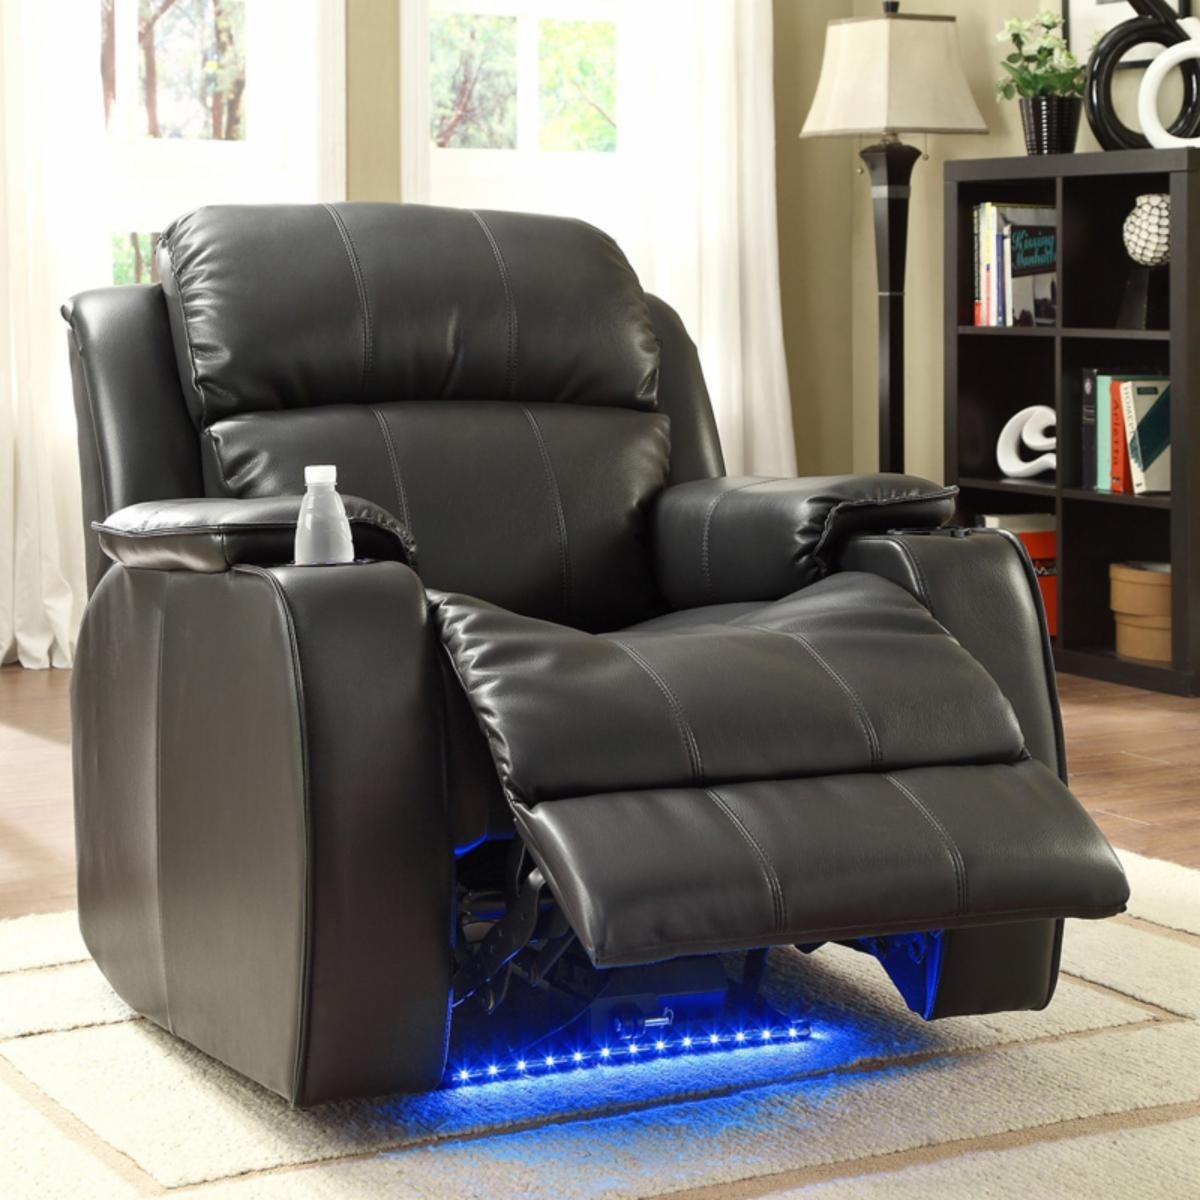 Incroyable Jimmy Power With Massage, LED And Cup Holder Recliner